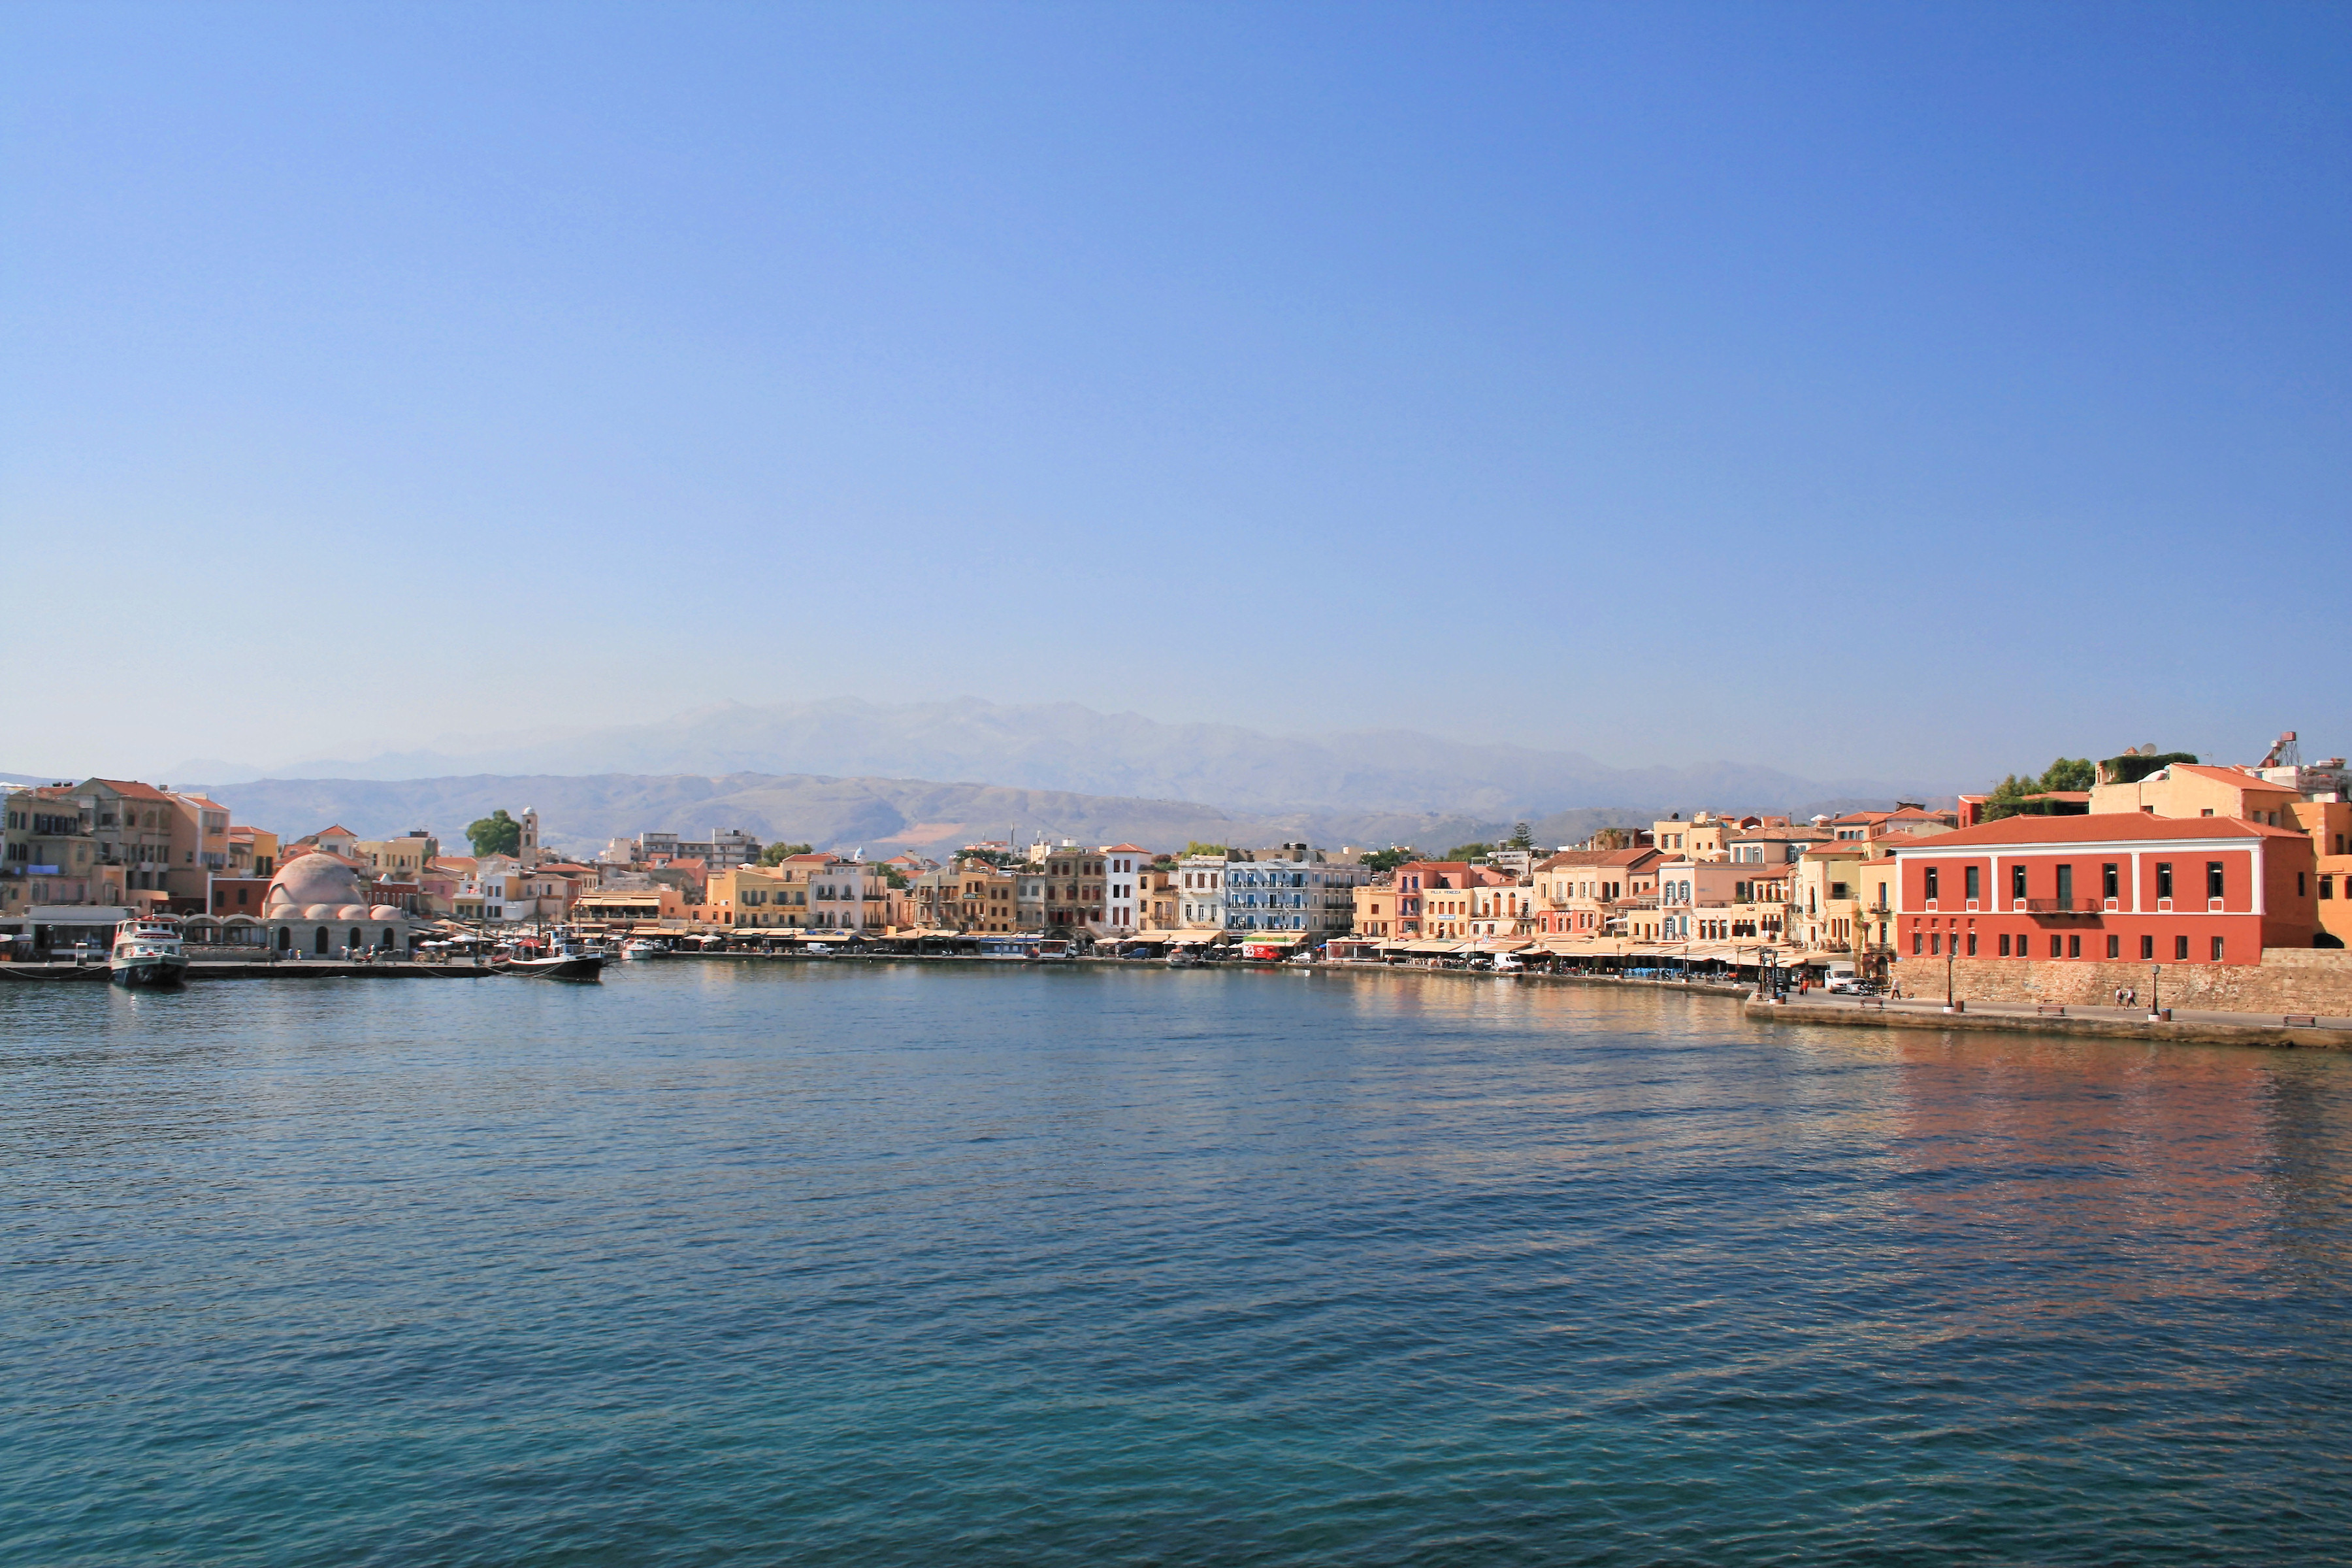 Chania Old Town and Venetian Harbour